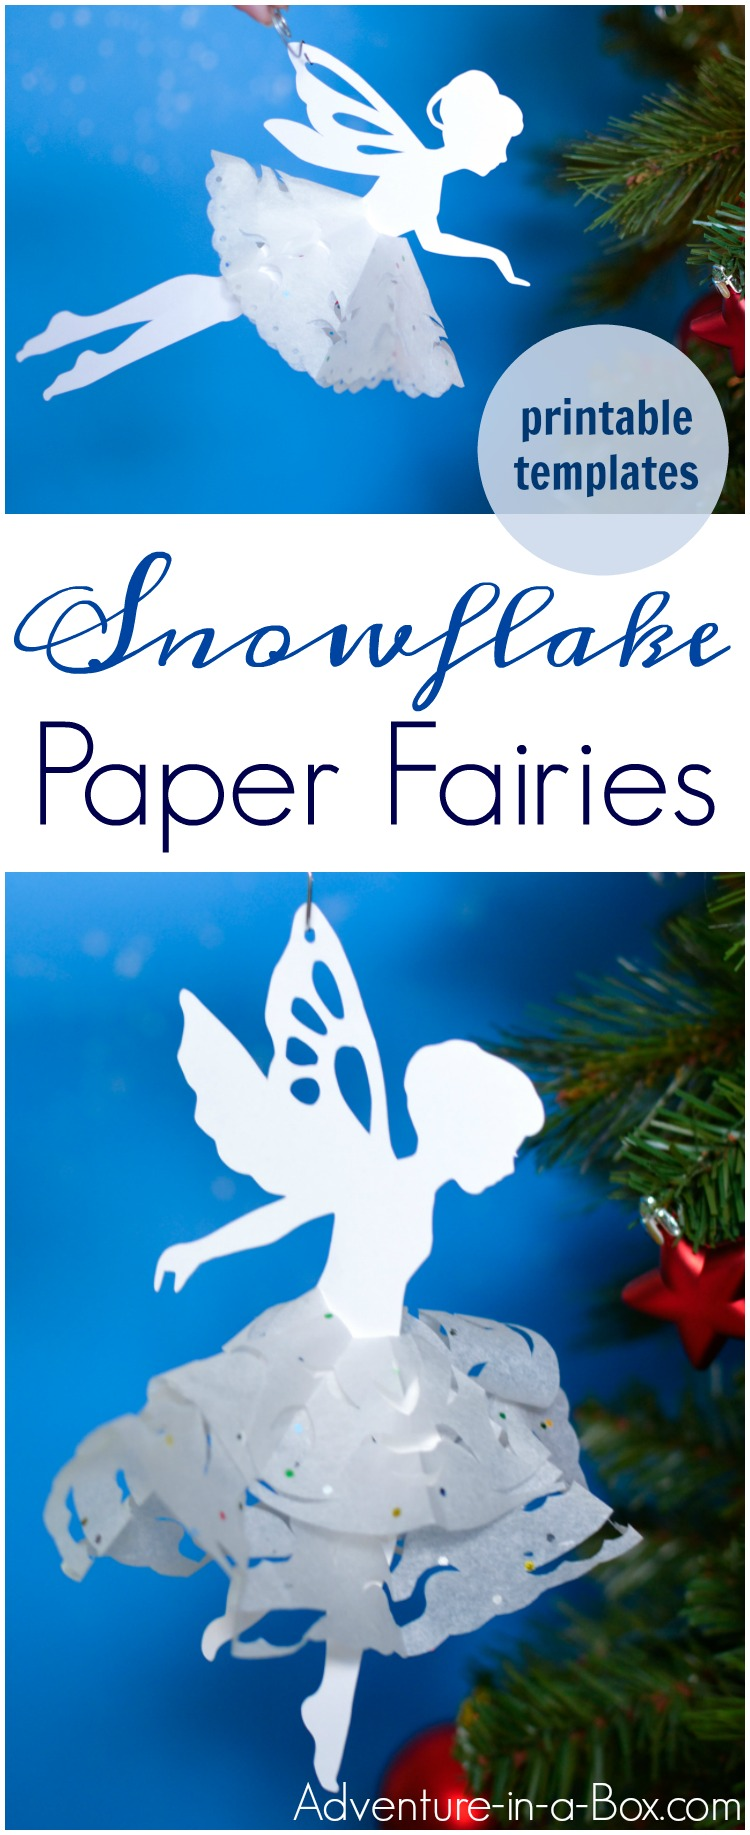 If you like cutting snowflakes out of paper, make a paper snowflake fairy with our free printable template!